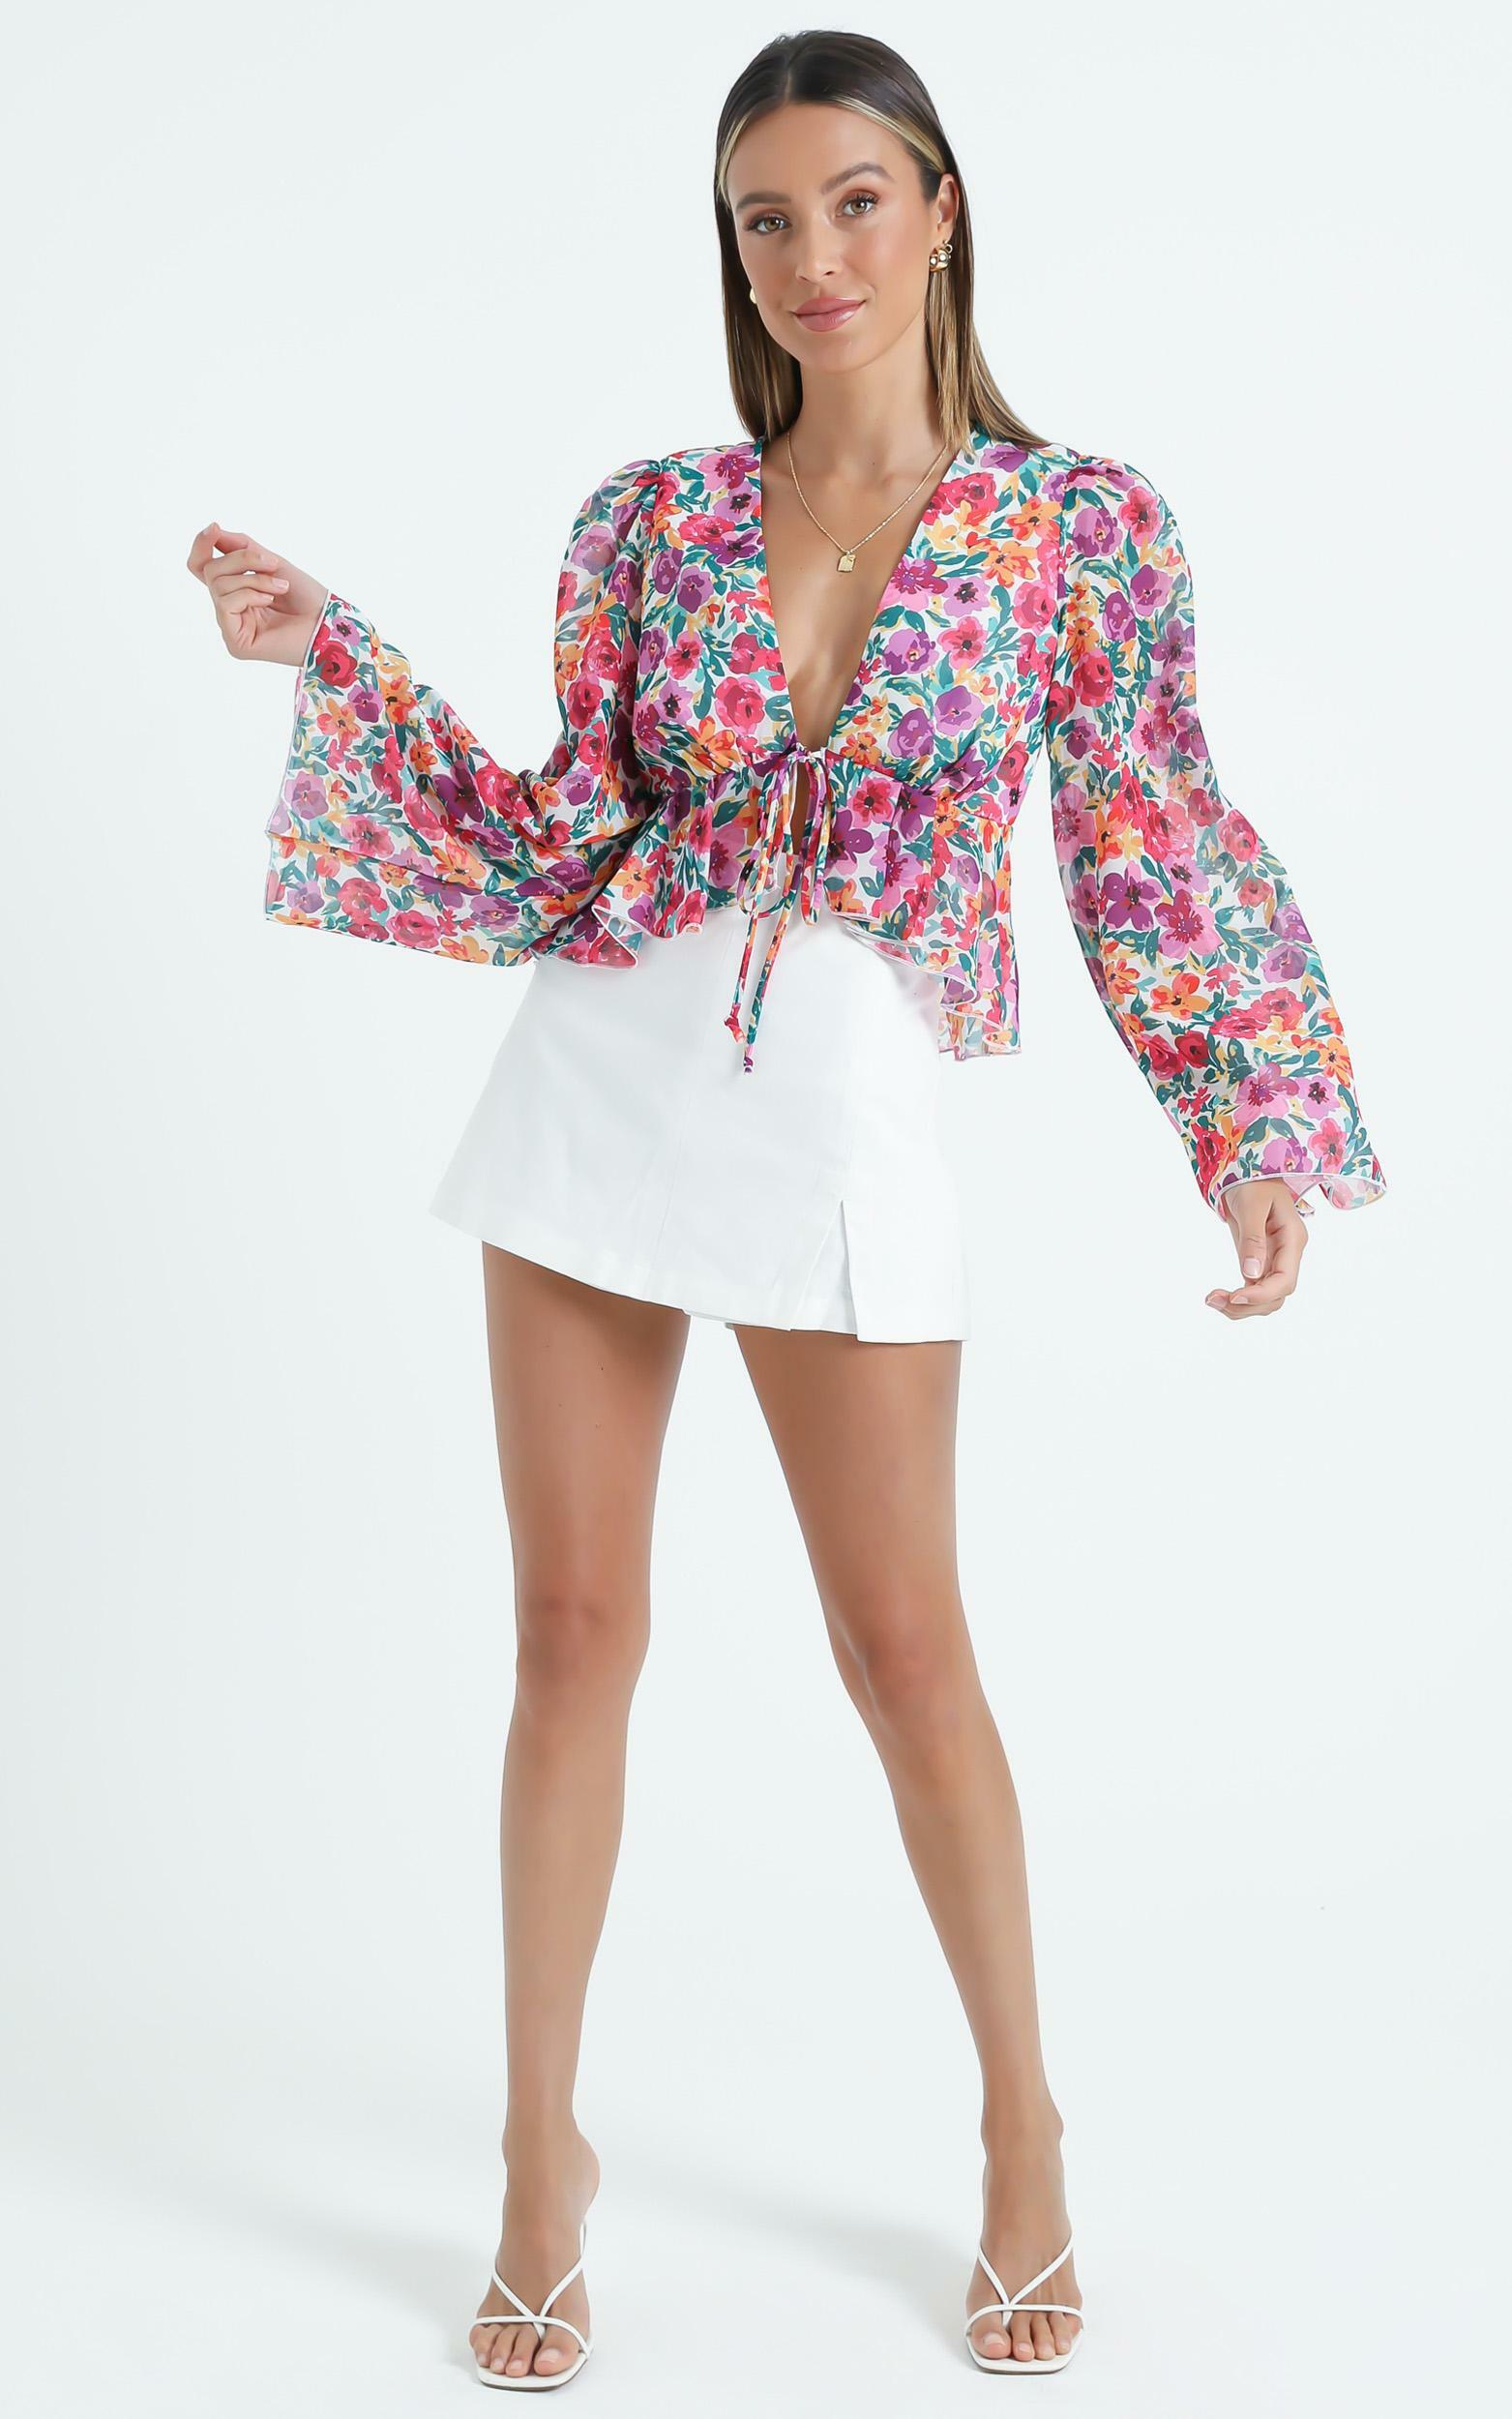 Dance It Out Top in Packed Floral - 06, MLT1, hi-res image number null